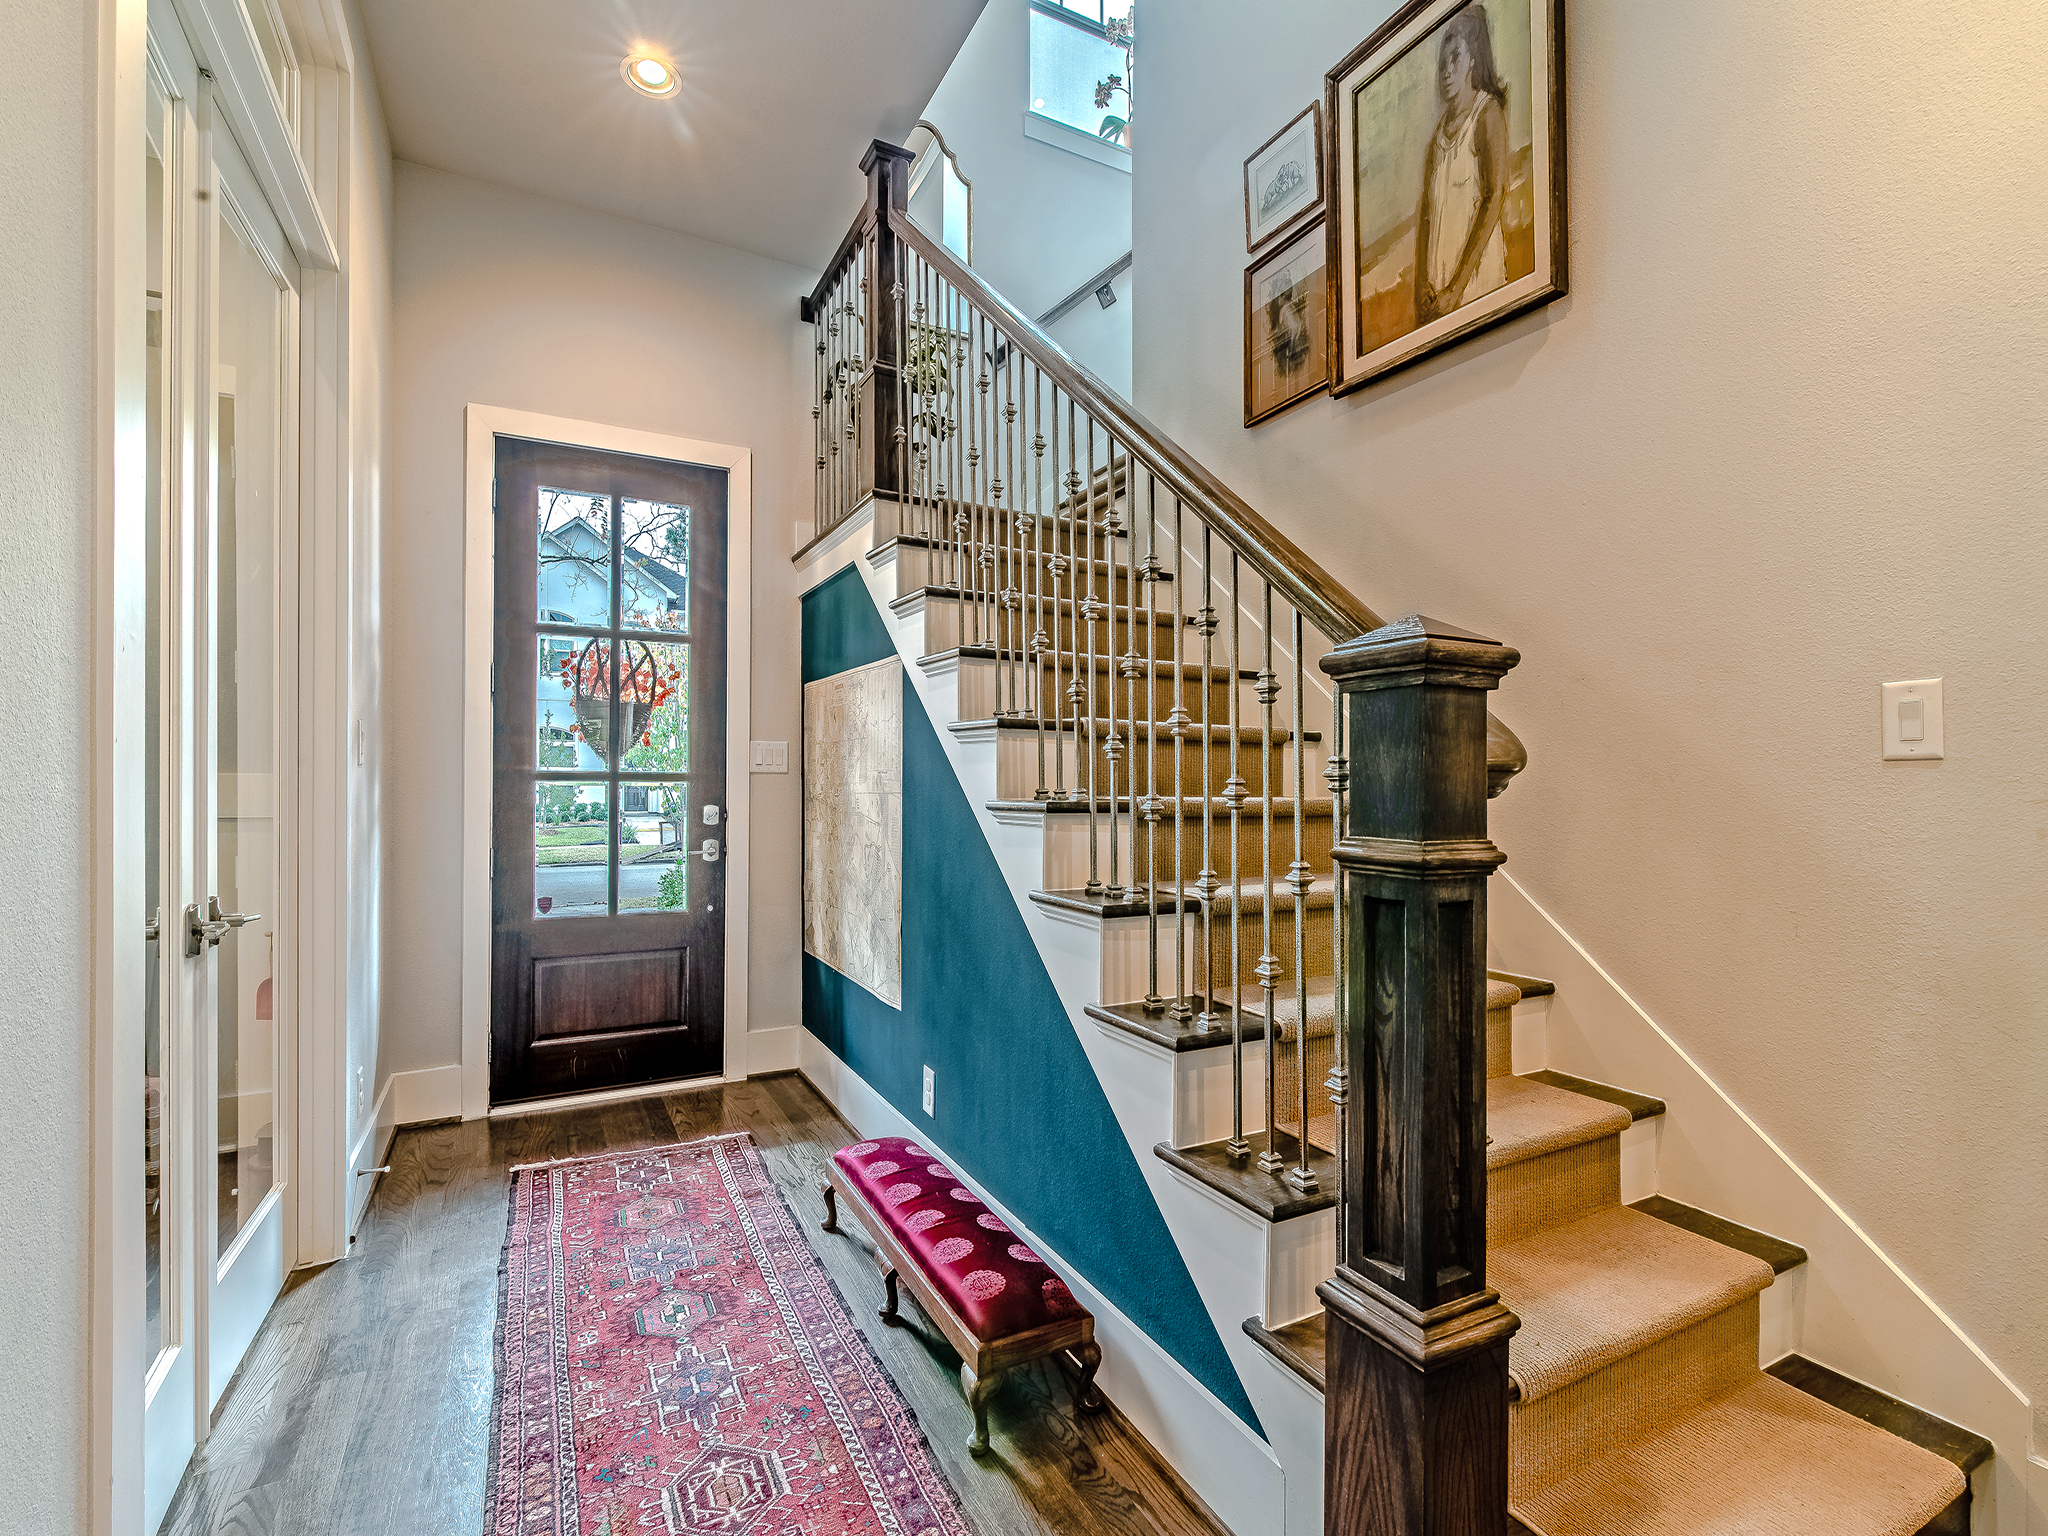 Inviting entry features gleaming hardwoods, soaring ceiling and wrought iron stair case. Just off the entry is an office space that is currently being used as a playroom.